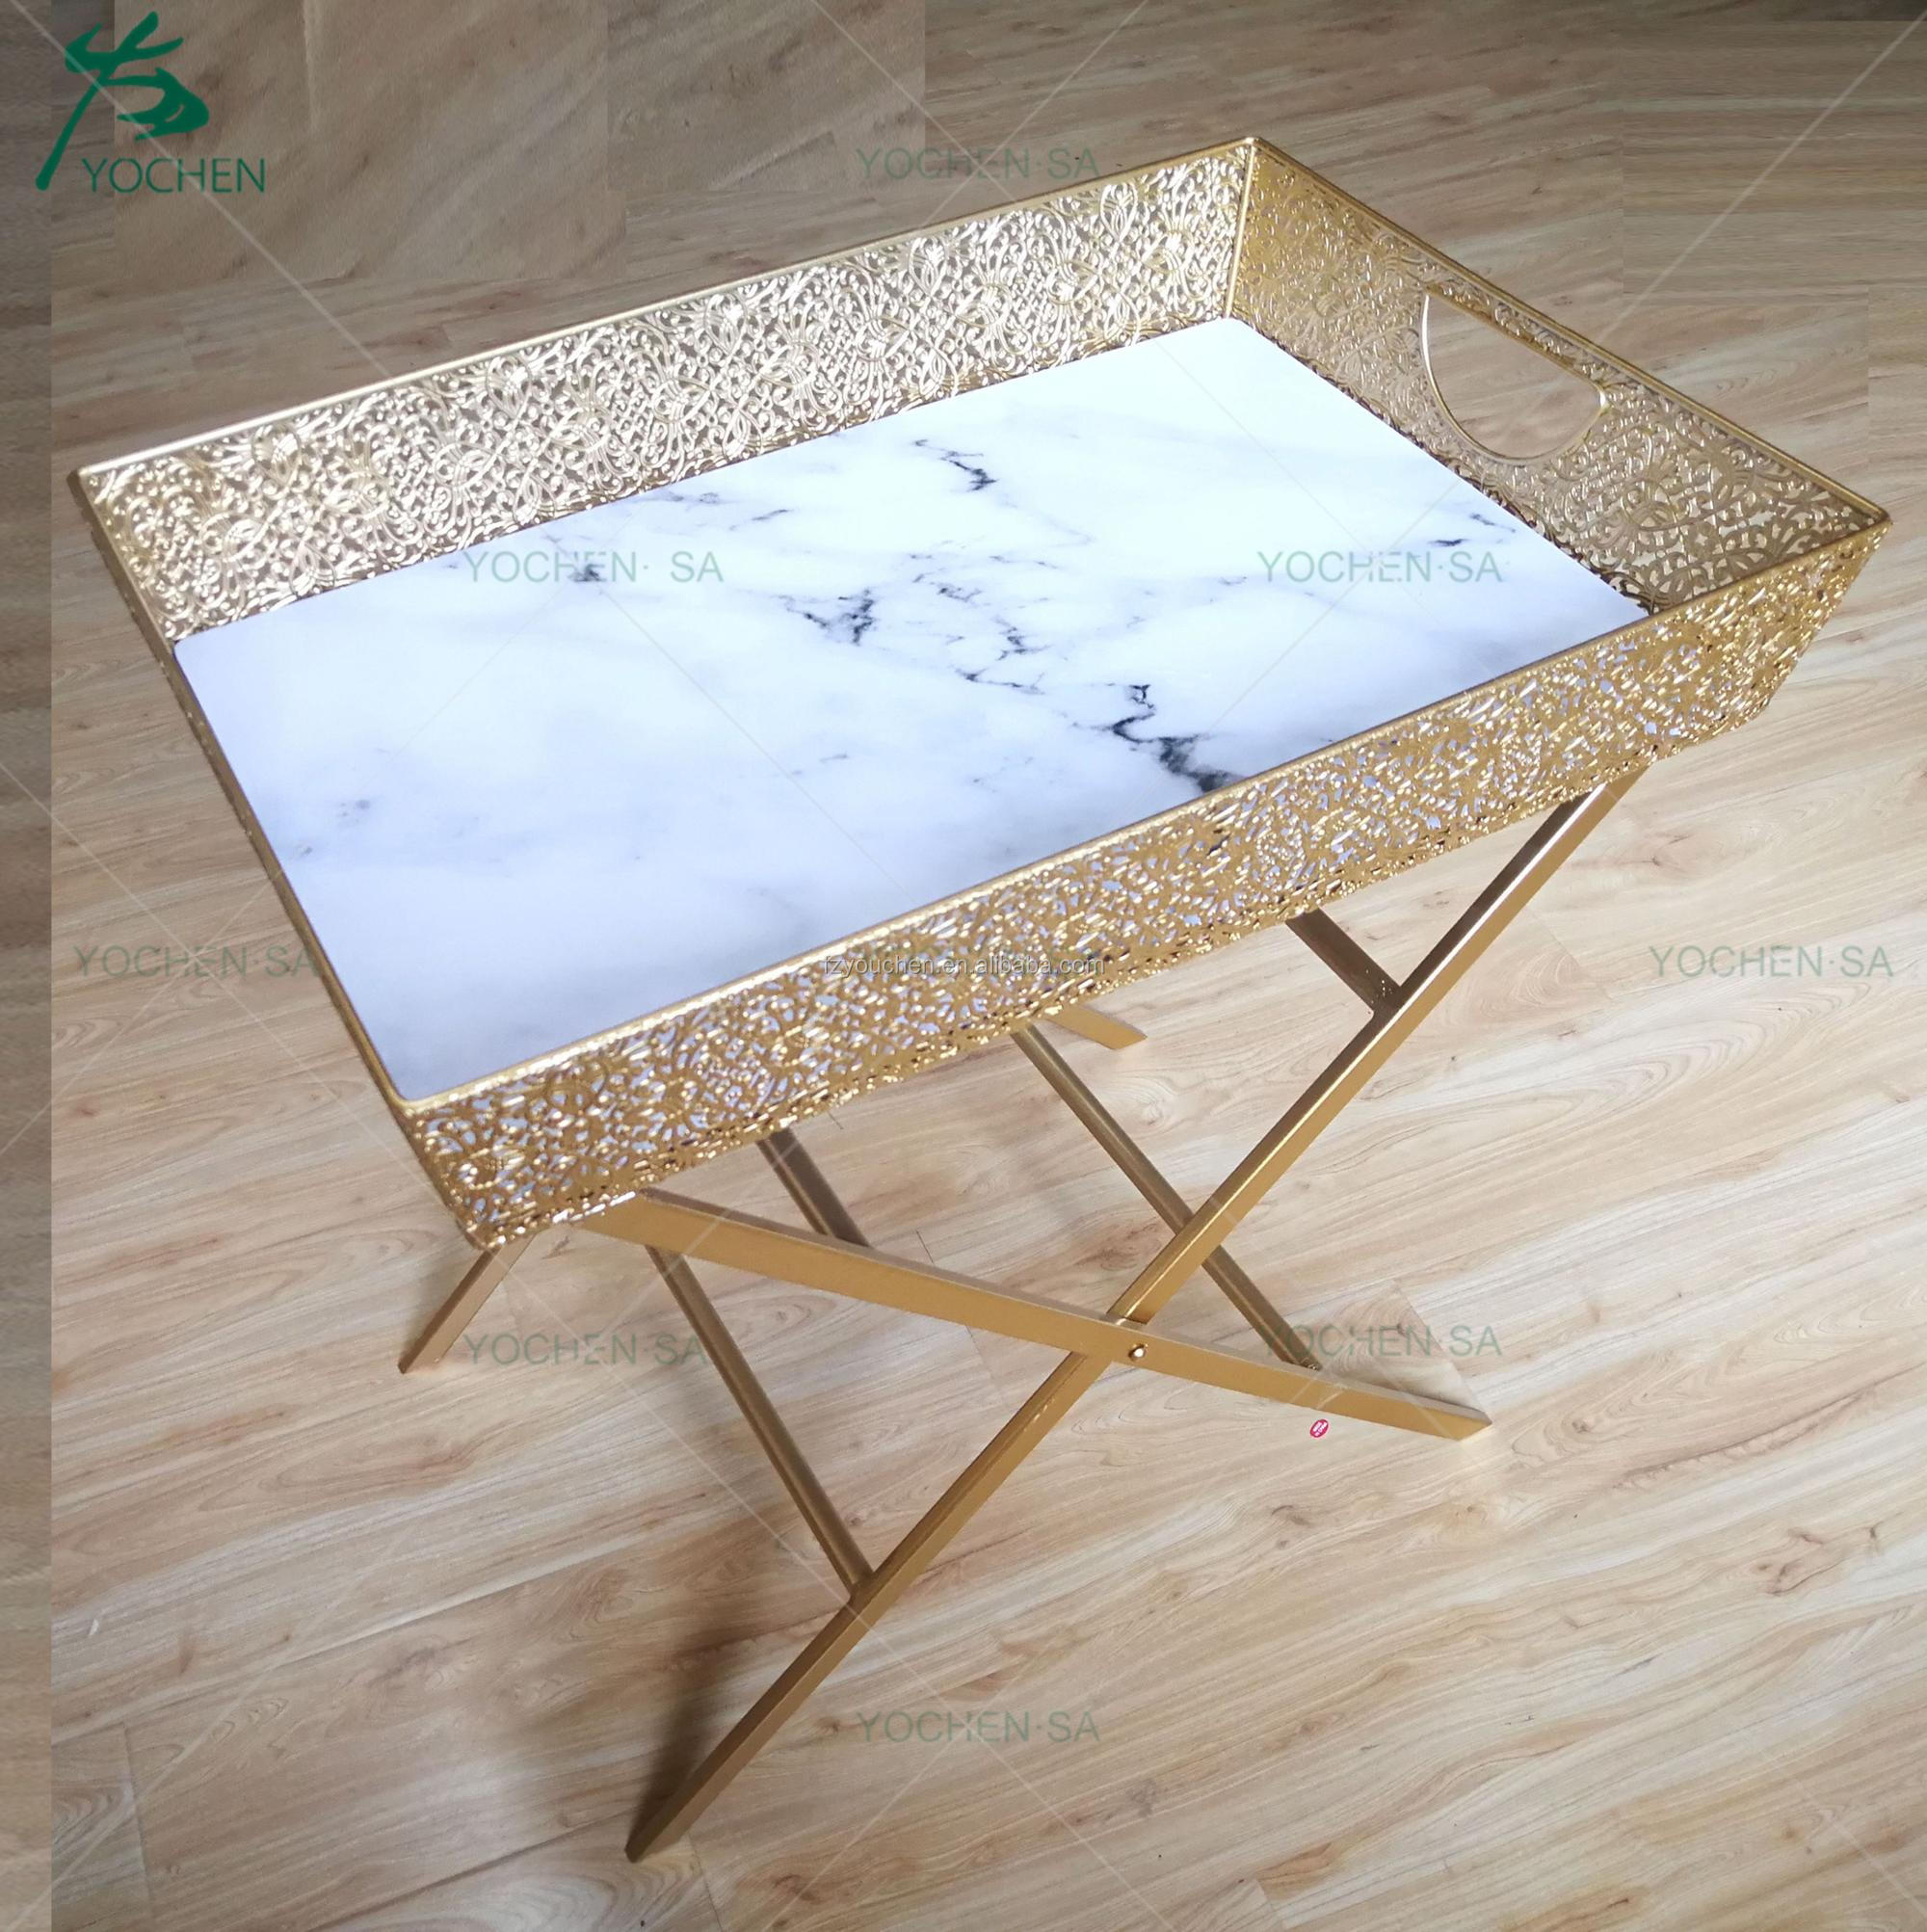 Folding Tray Table, Folding Tray Table Suppliers And Manufacturers At  Alibaba.com